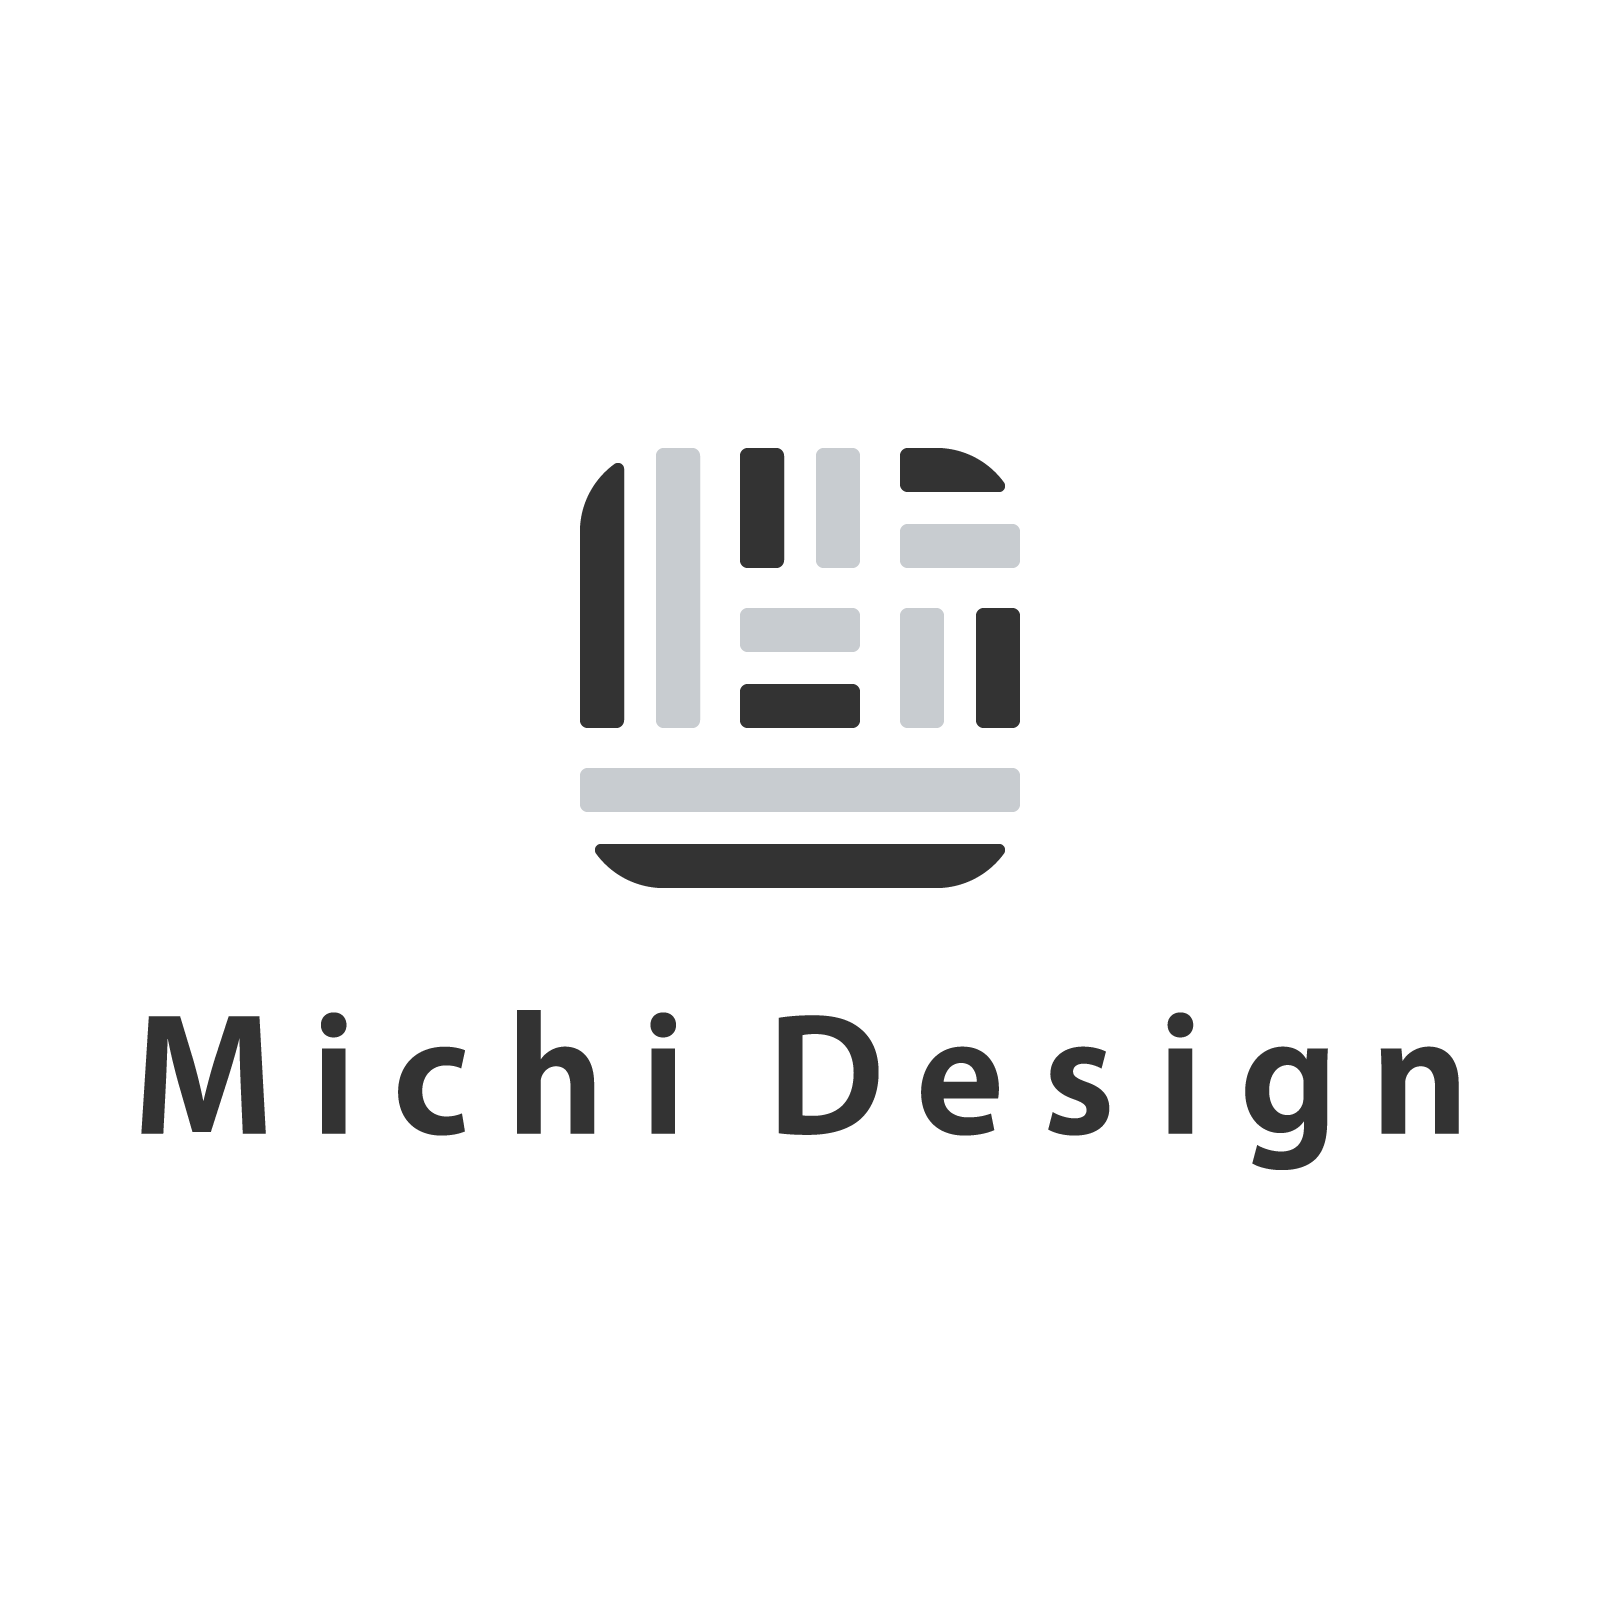 logo_michidesign